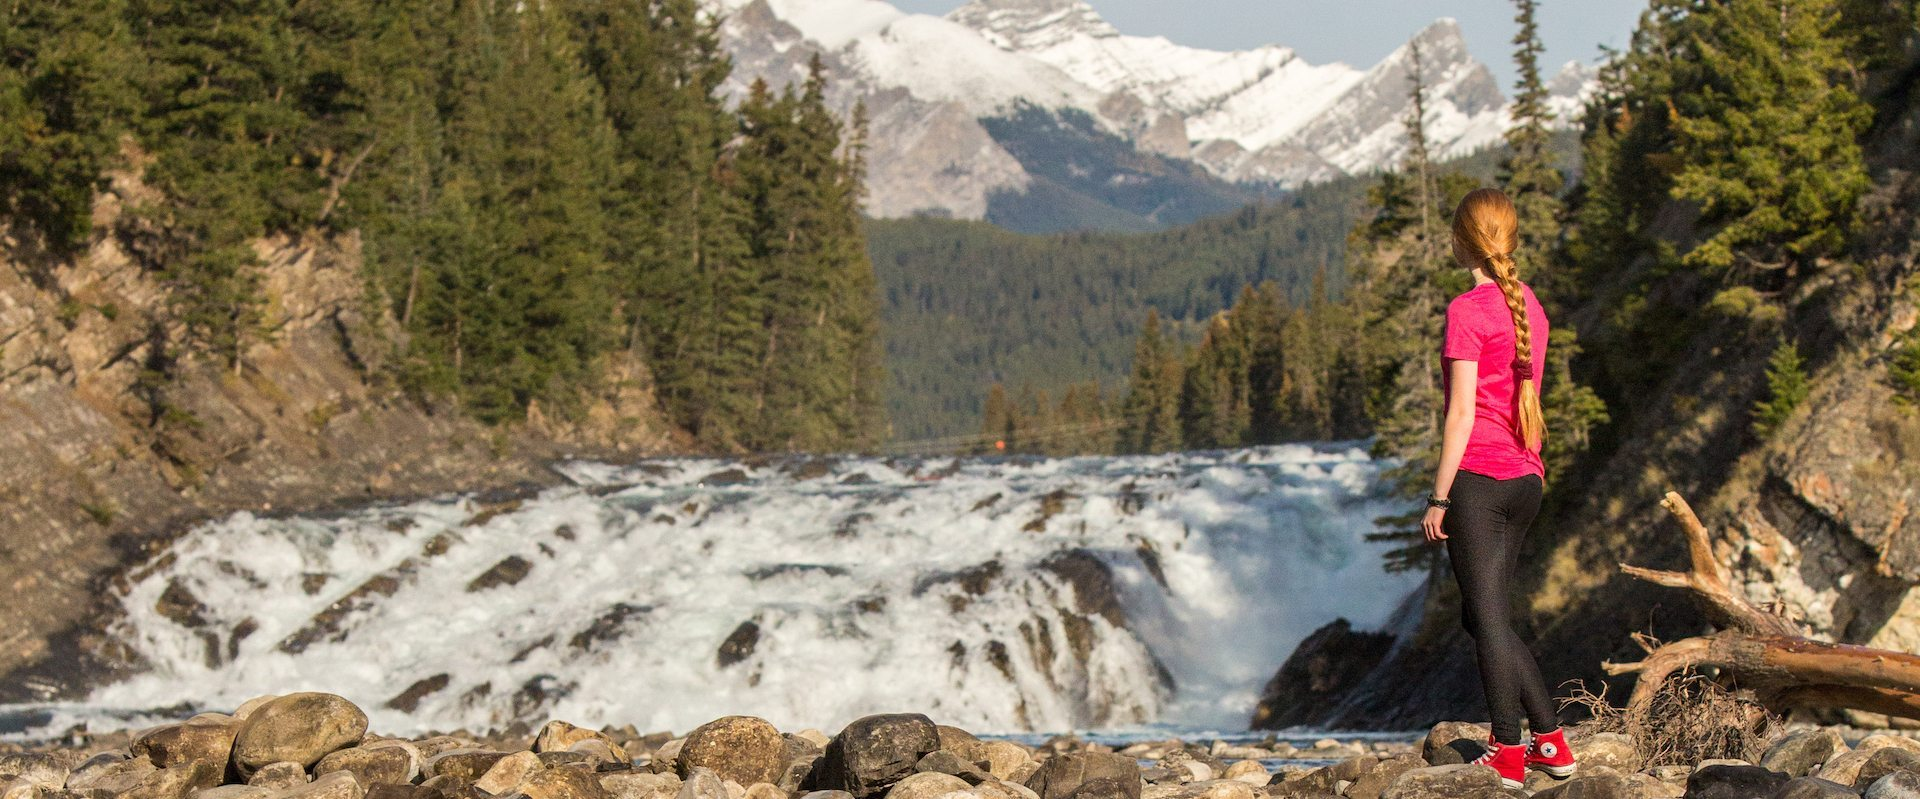 Sightseeing at Bow Falls with Discover Banff Tours